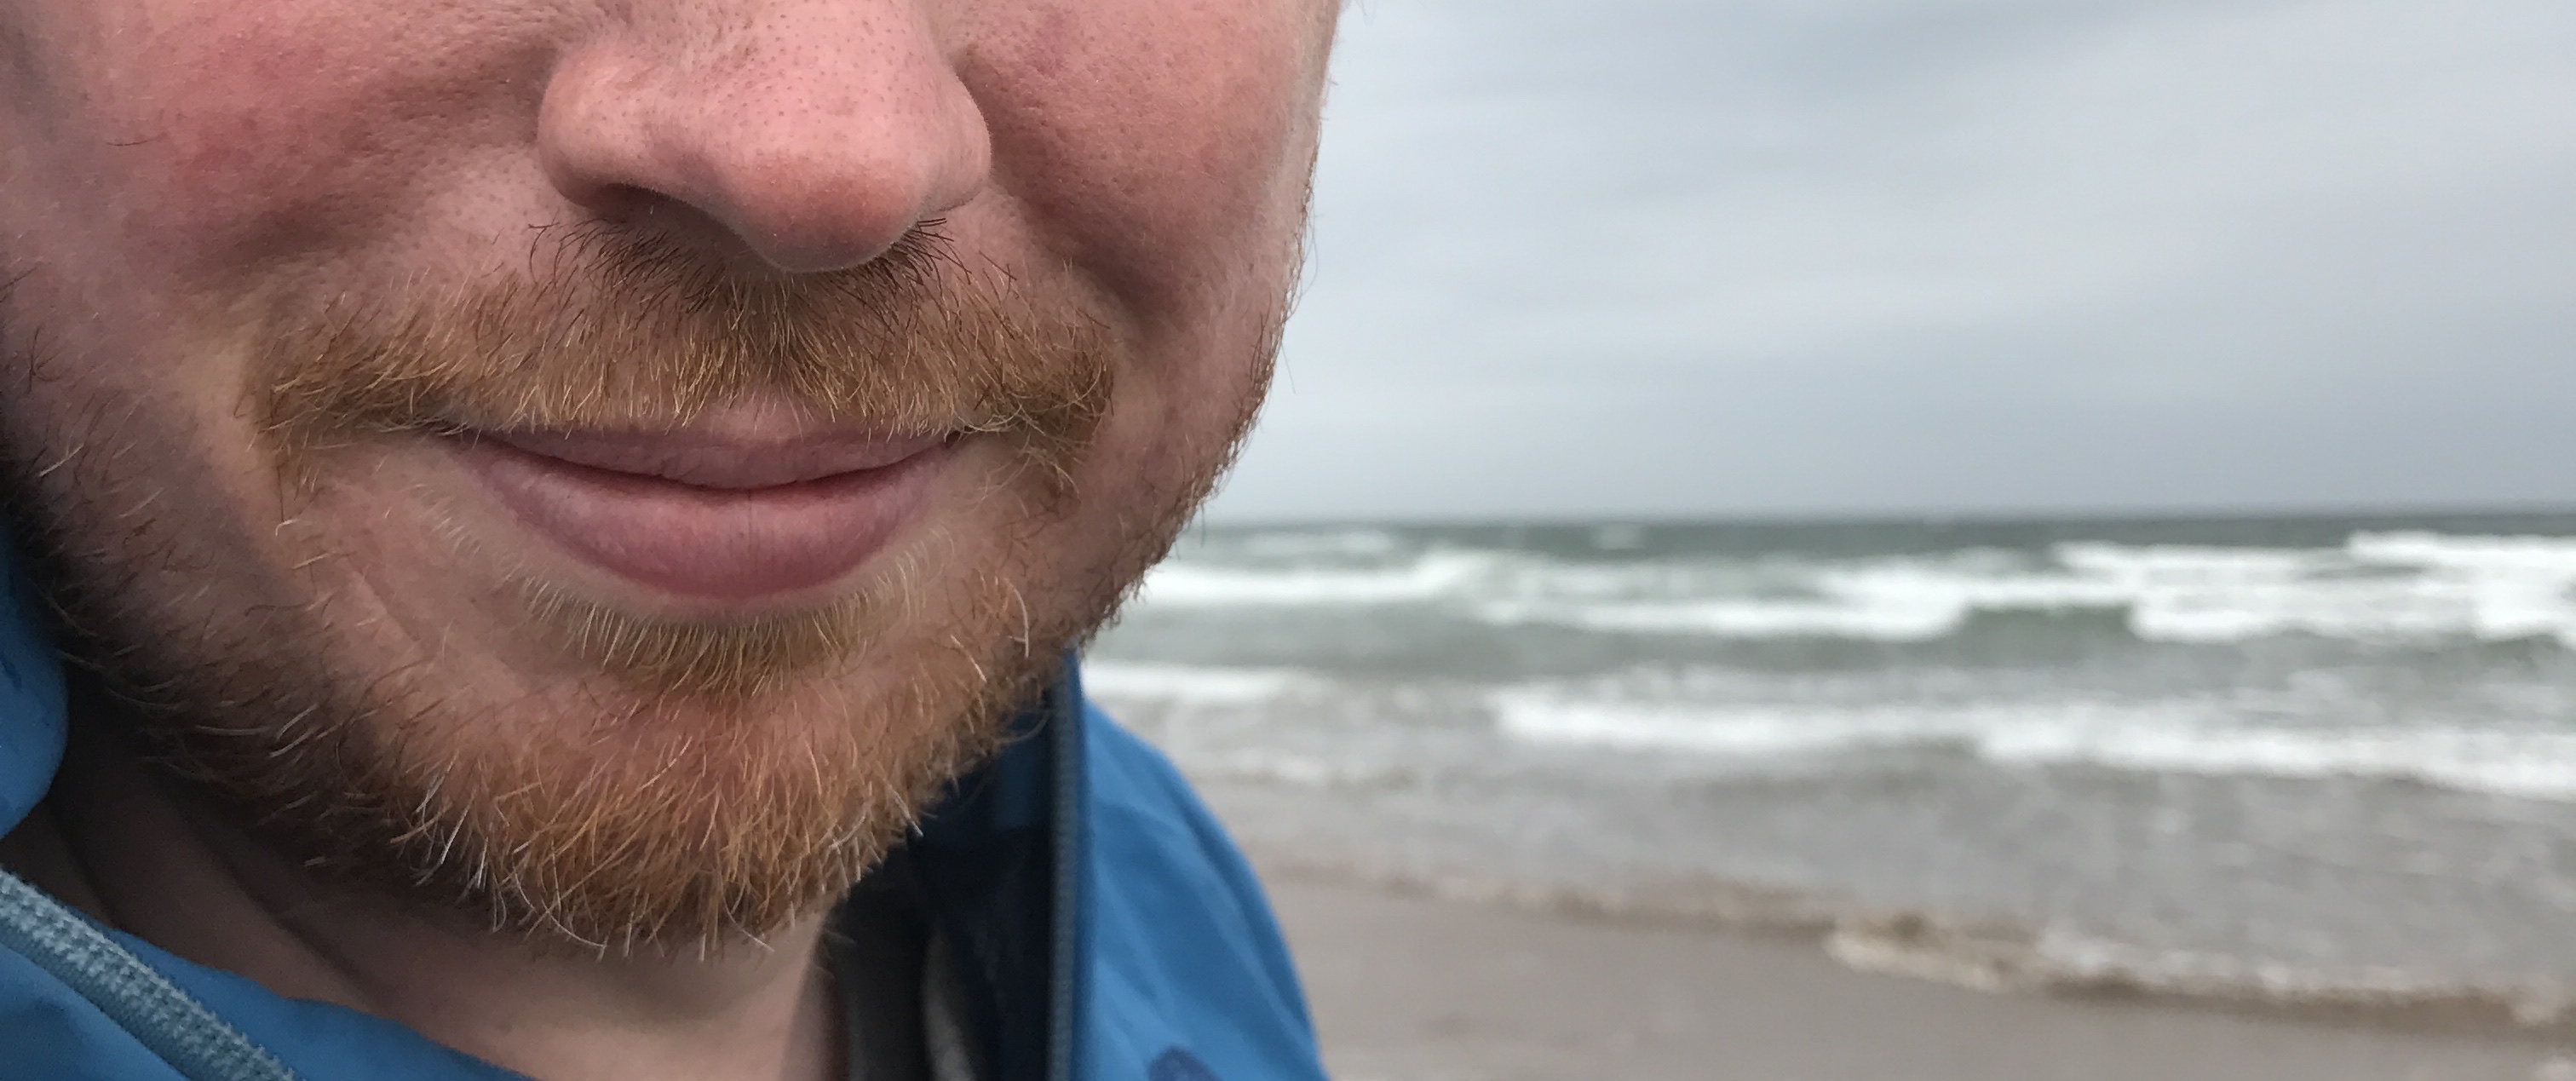 A photo of EA's mouth and chin, smiling by the sea